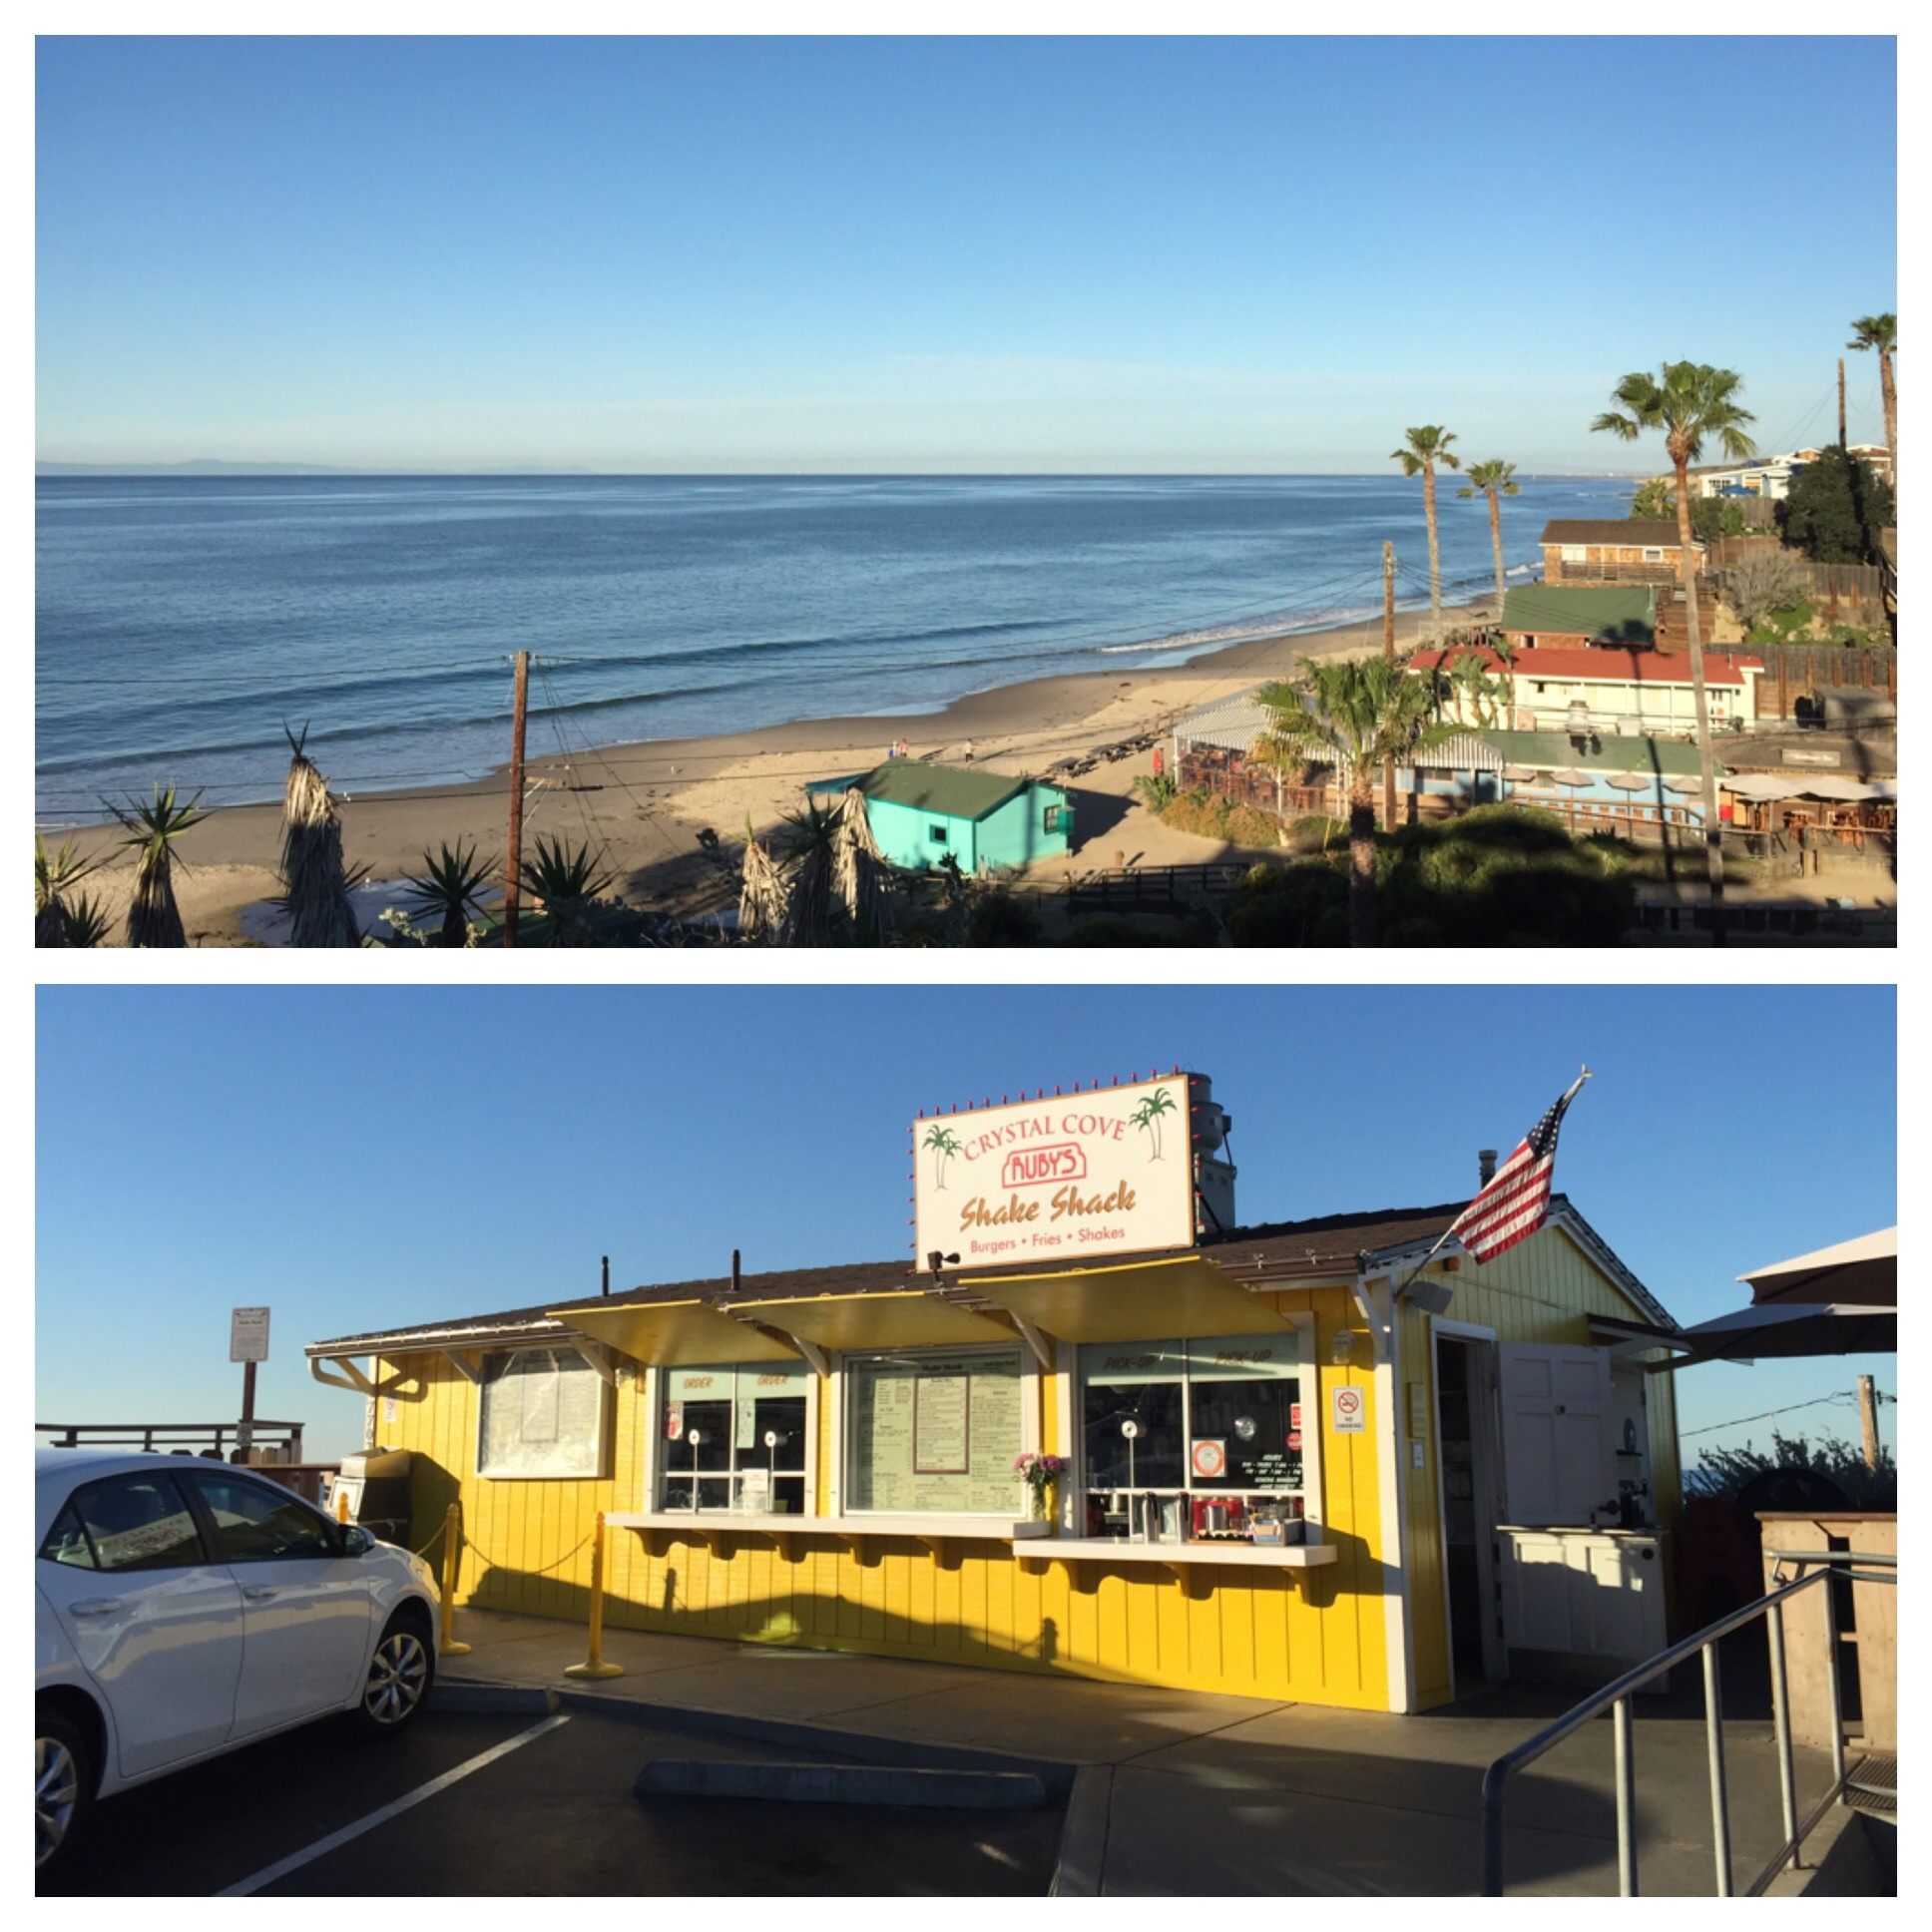 Ruby's is overlooking Crystal Cove about a mile before you get to Laguna Beach.